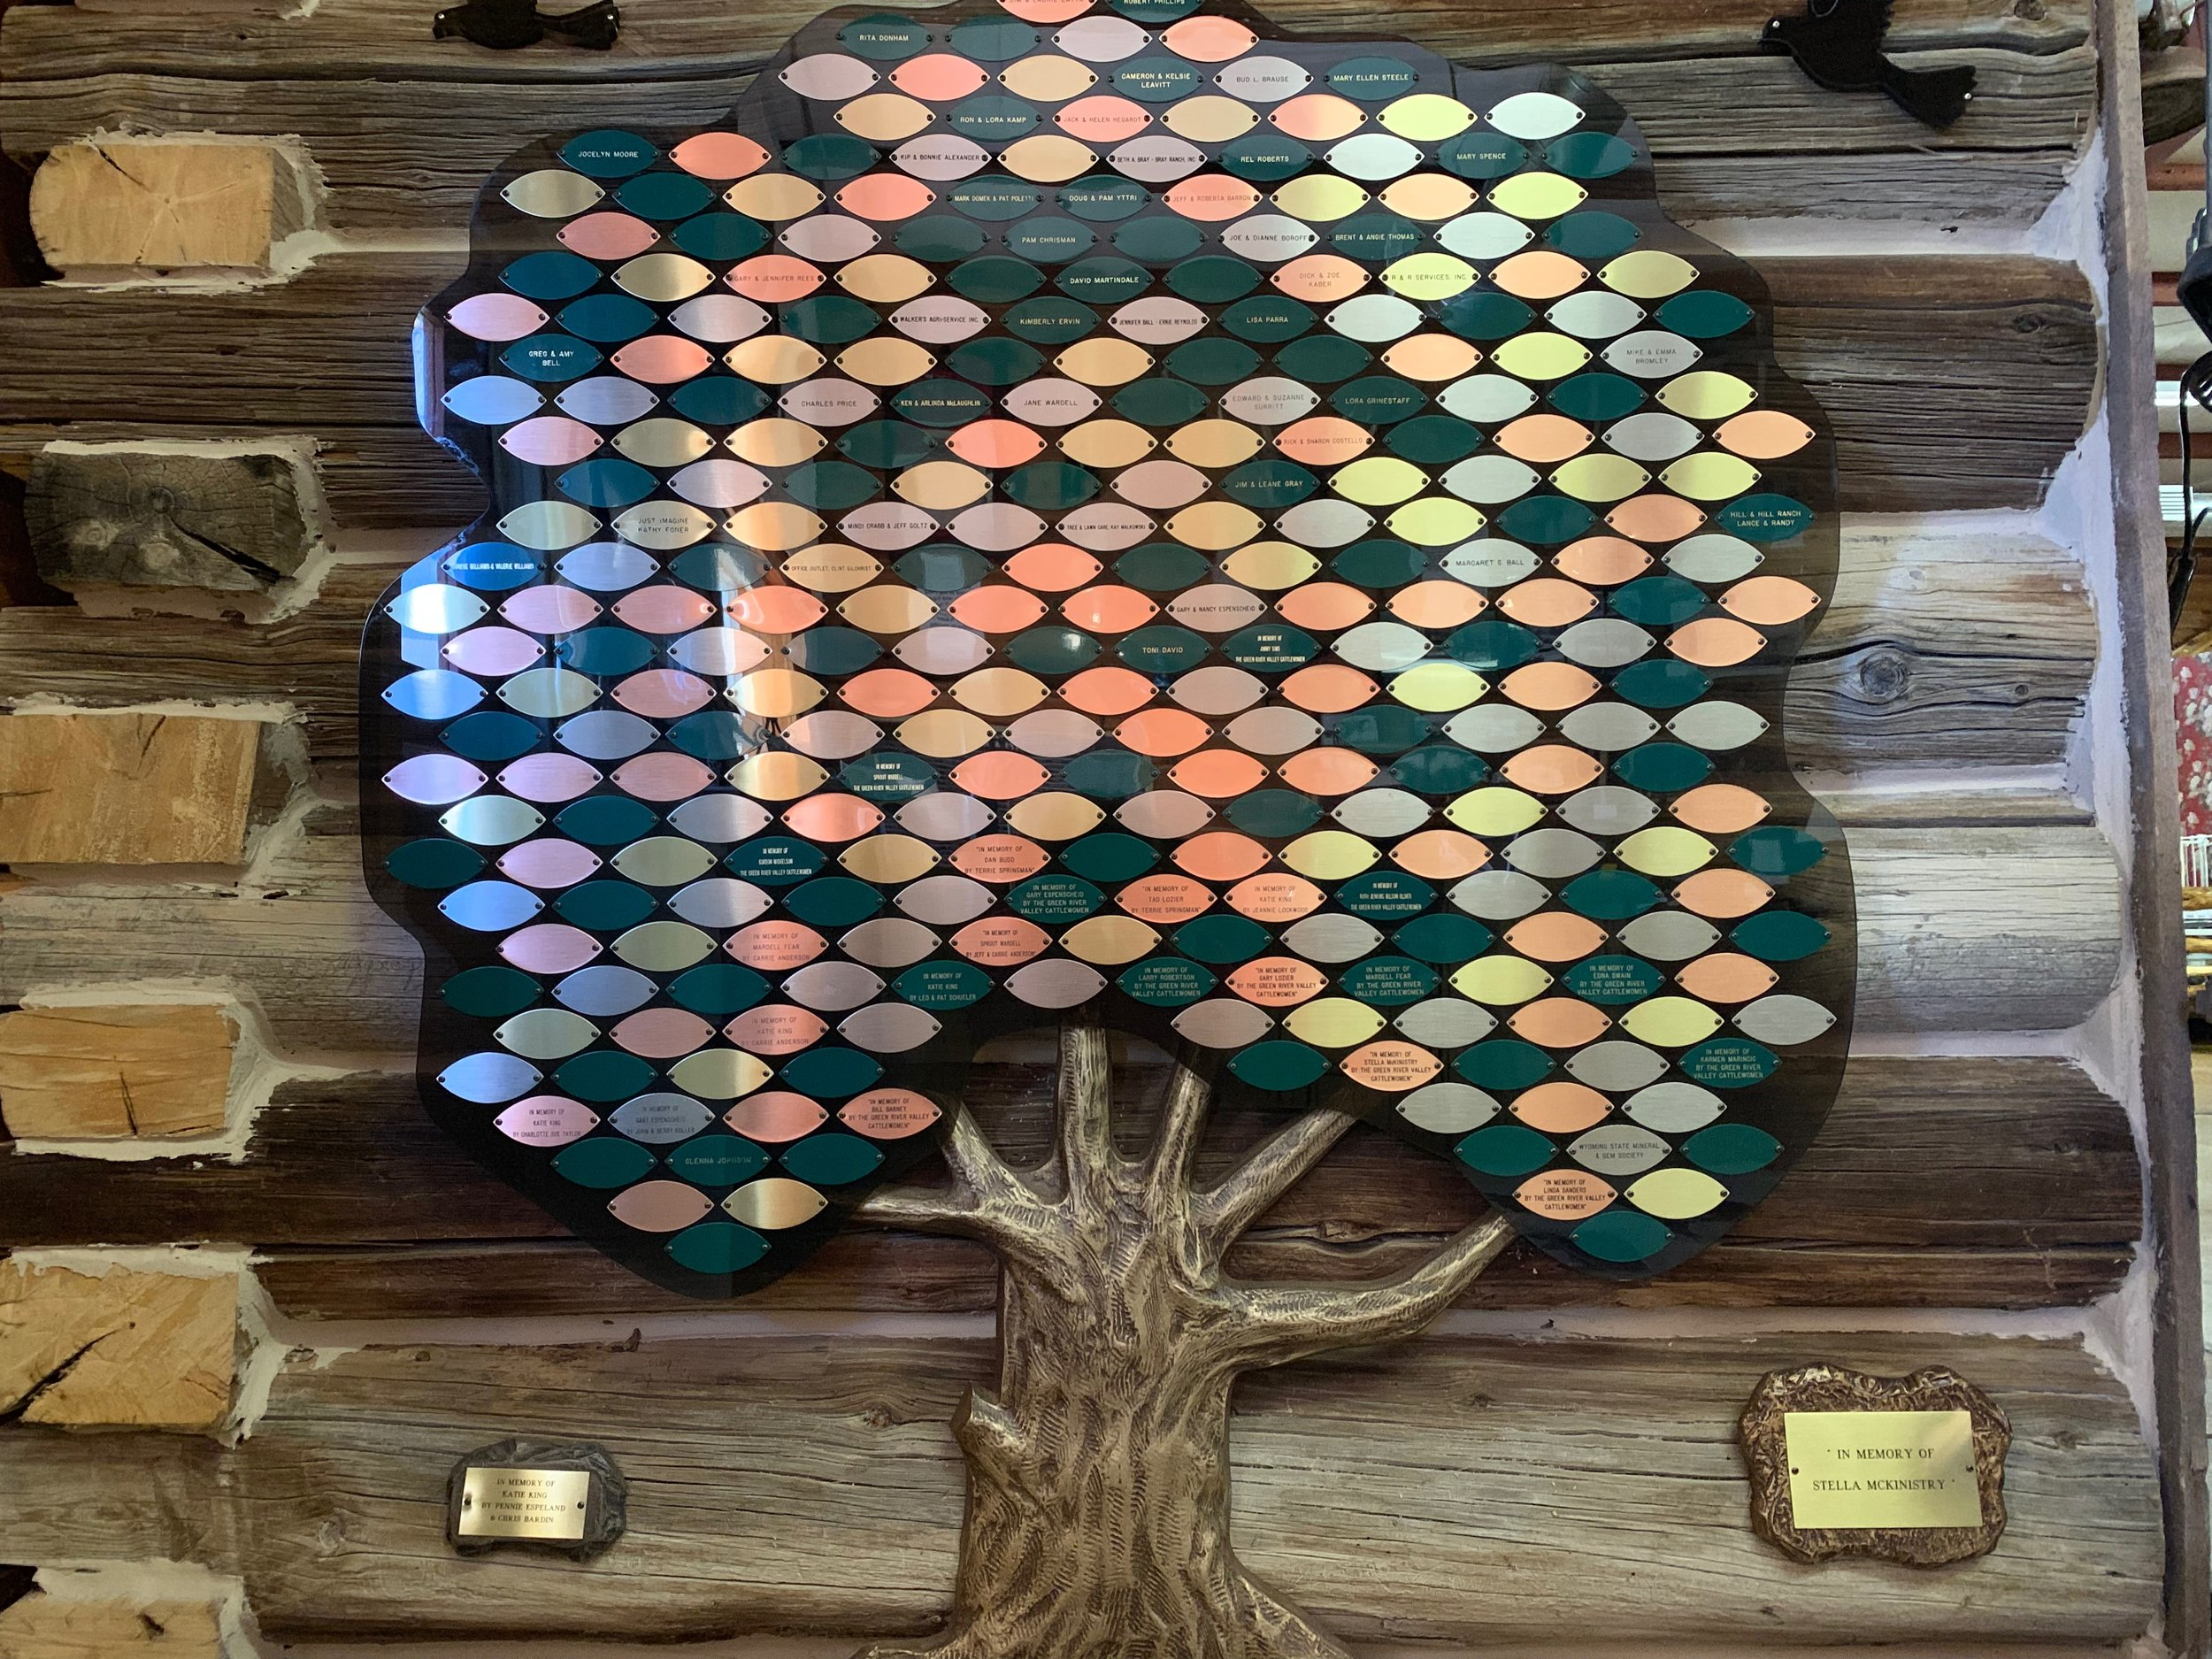 Donation Tree - When someone chooses to donate $25 or more to the museum, a leaf inscribed with the patron's name is added to the Donation Tree in recognition of their generosity in helping to preserve local history.